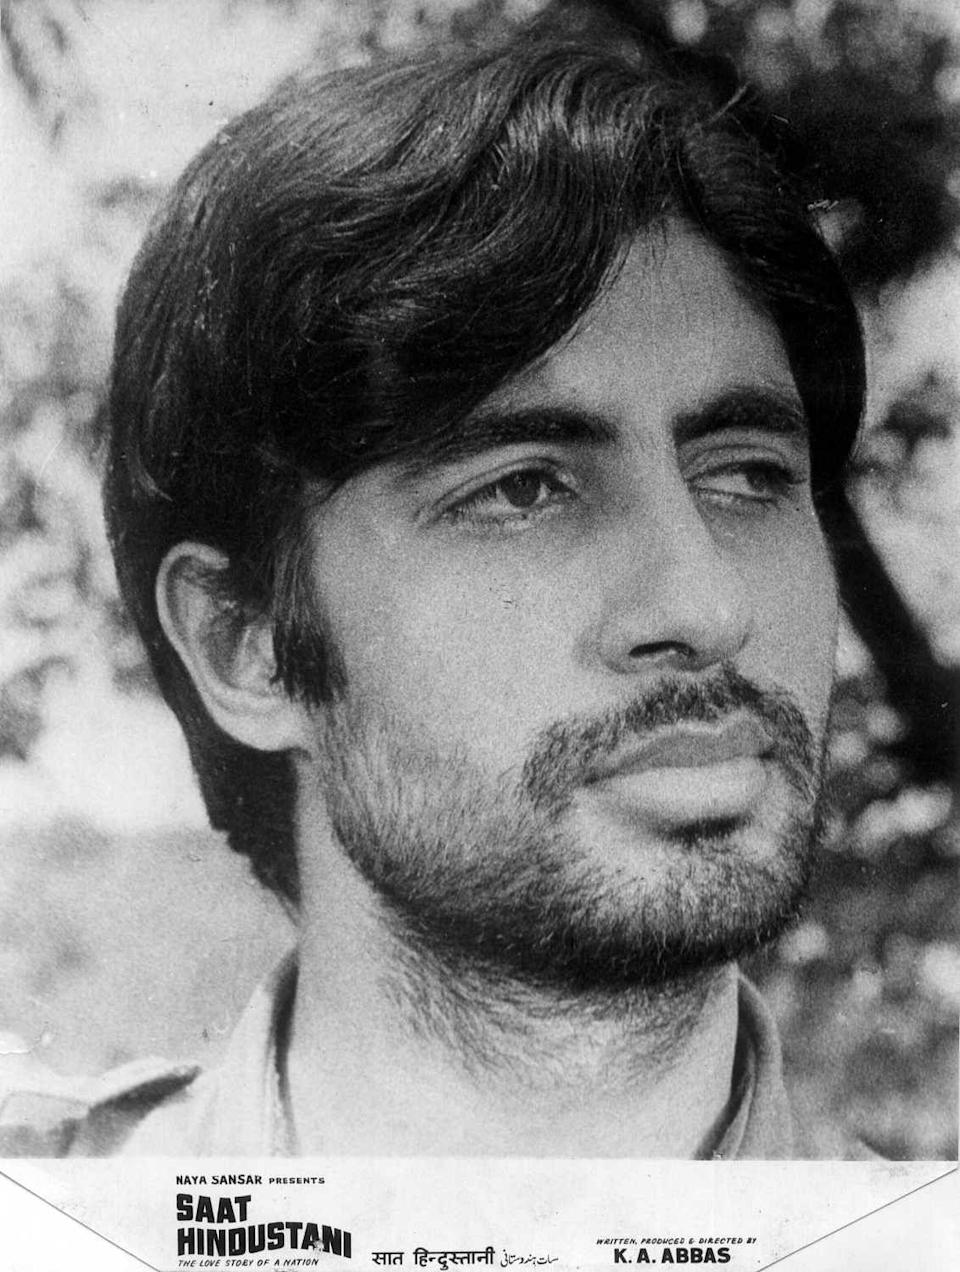 Amitabh Bachchan in a still from his first film <i>Saat Hindustani. </i>